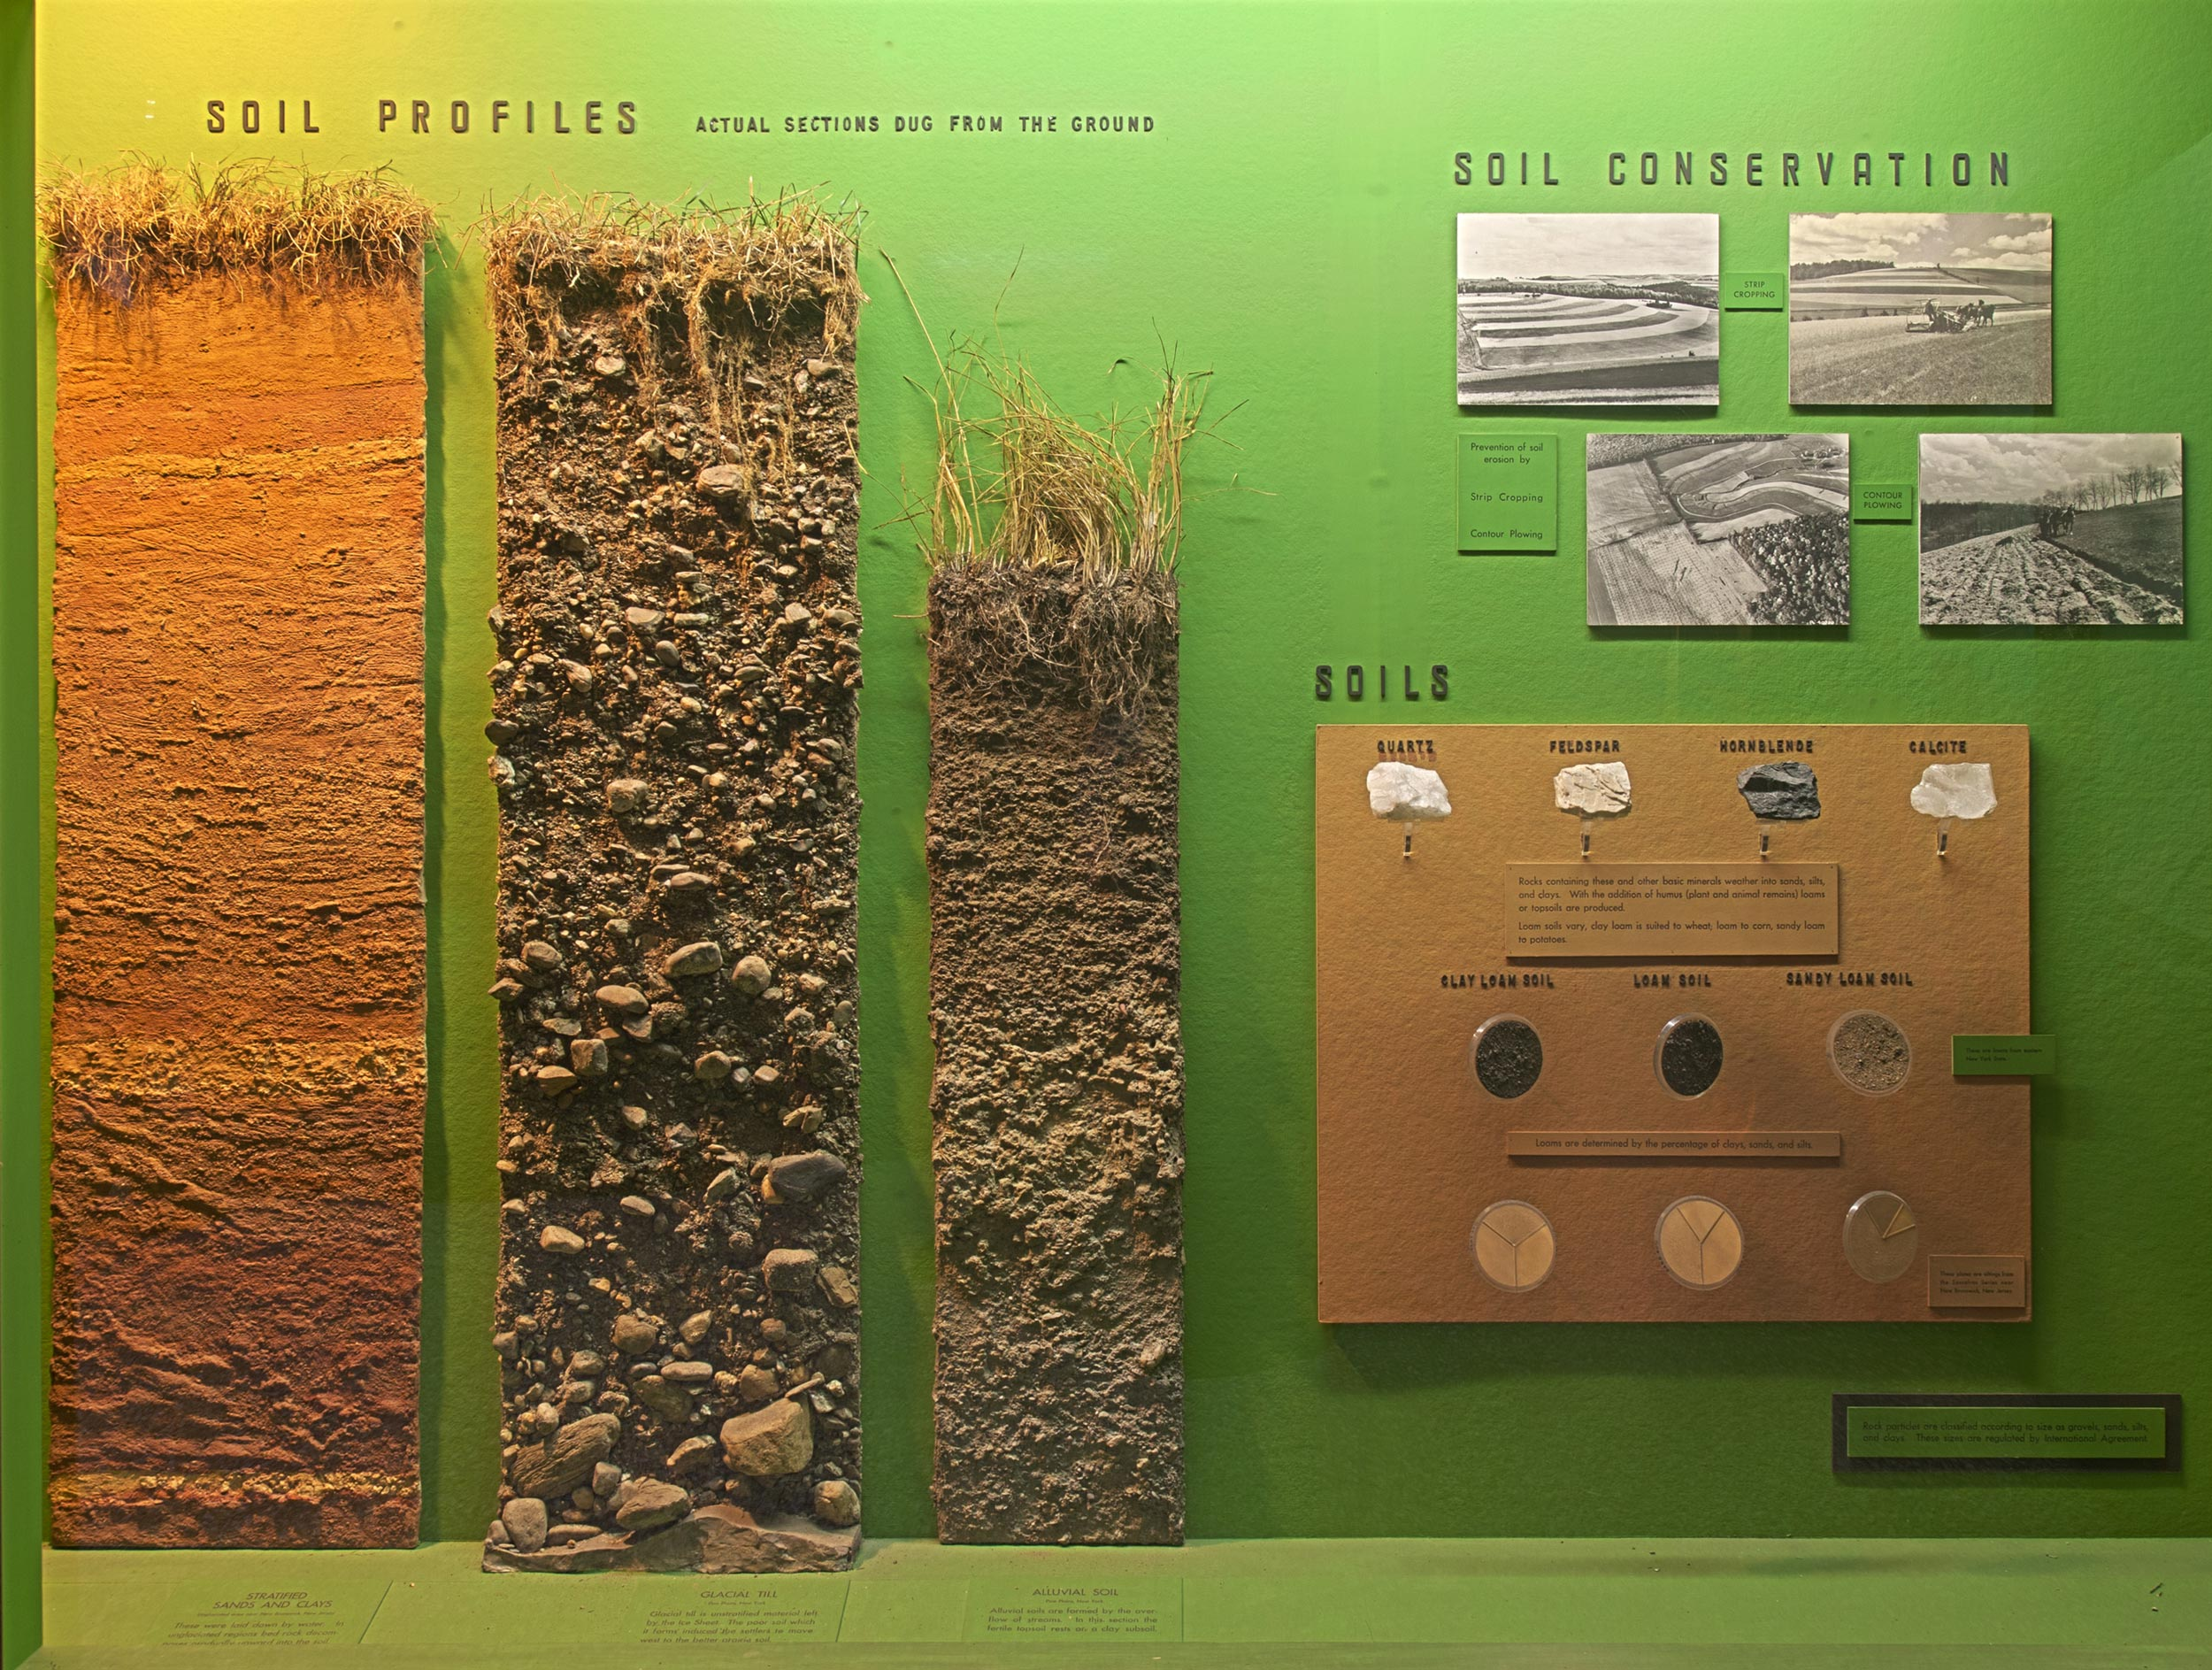 Exhibition case showing several soil profiles (actual sections dug from the soil), pictures about soil conservation and samples of soil.